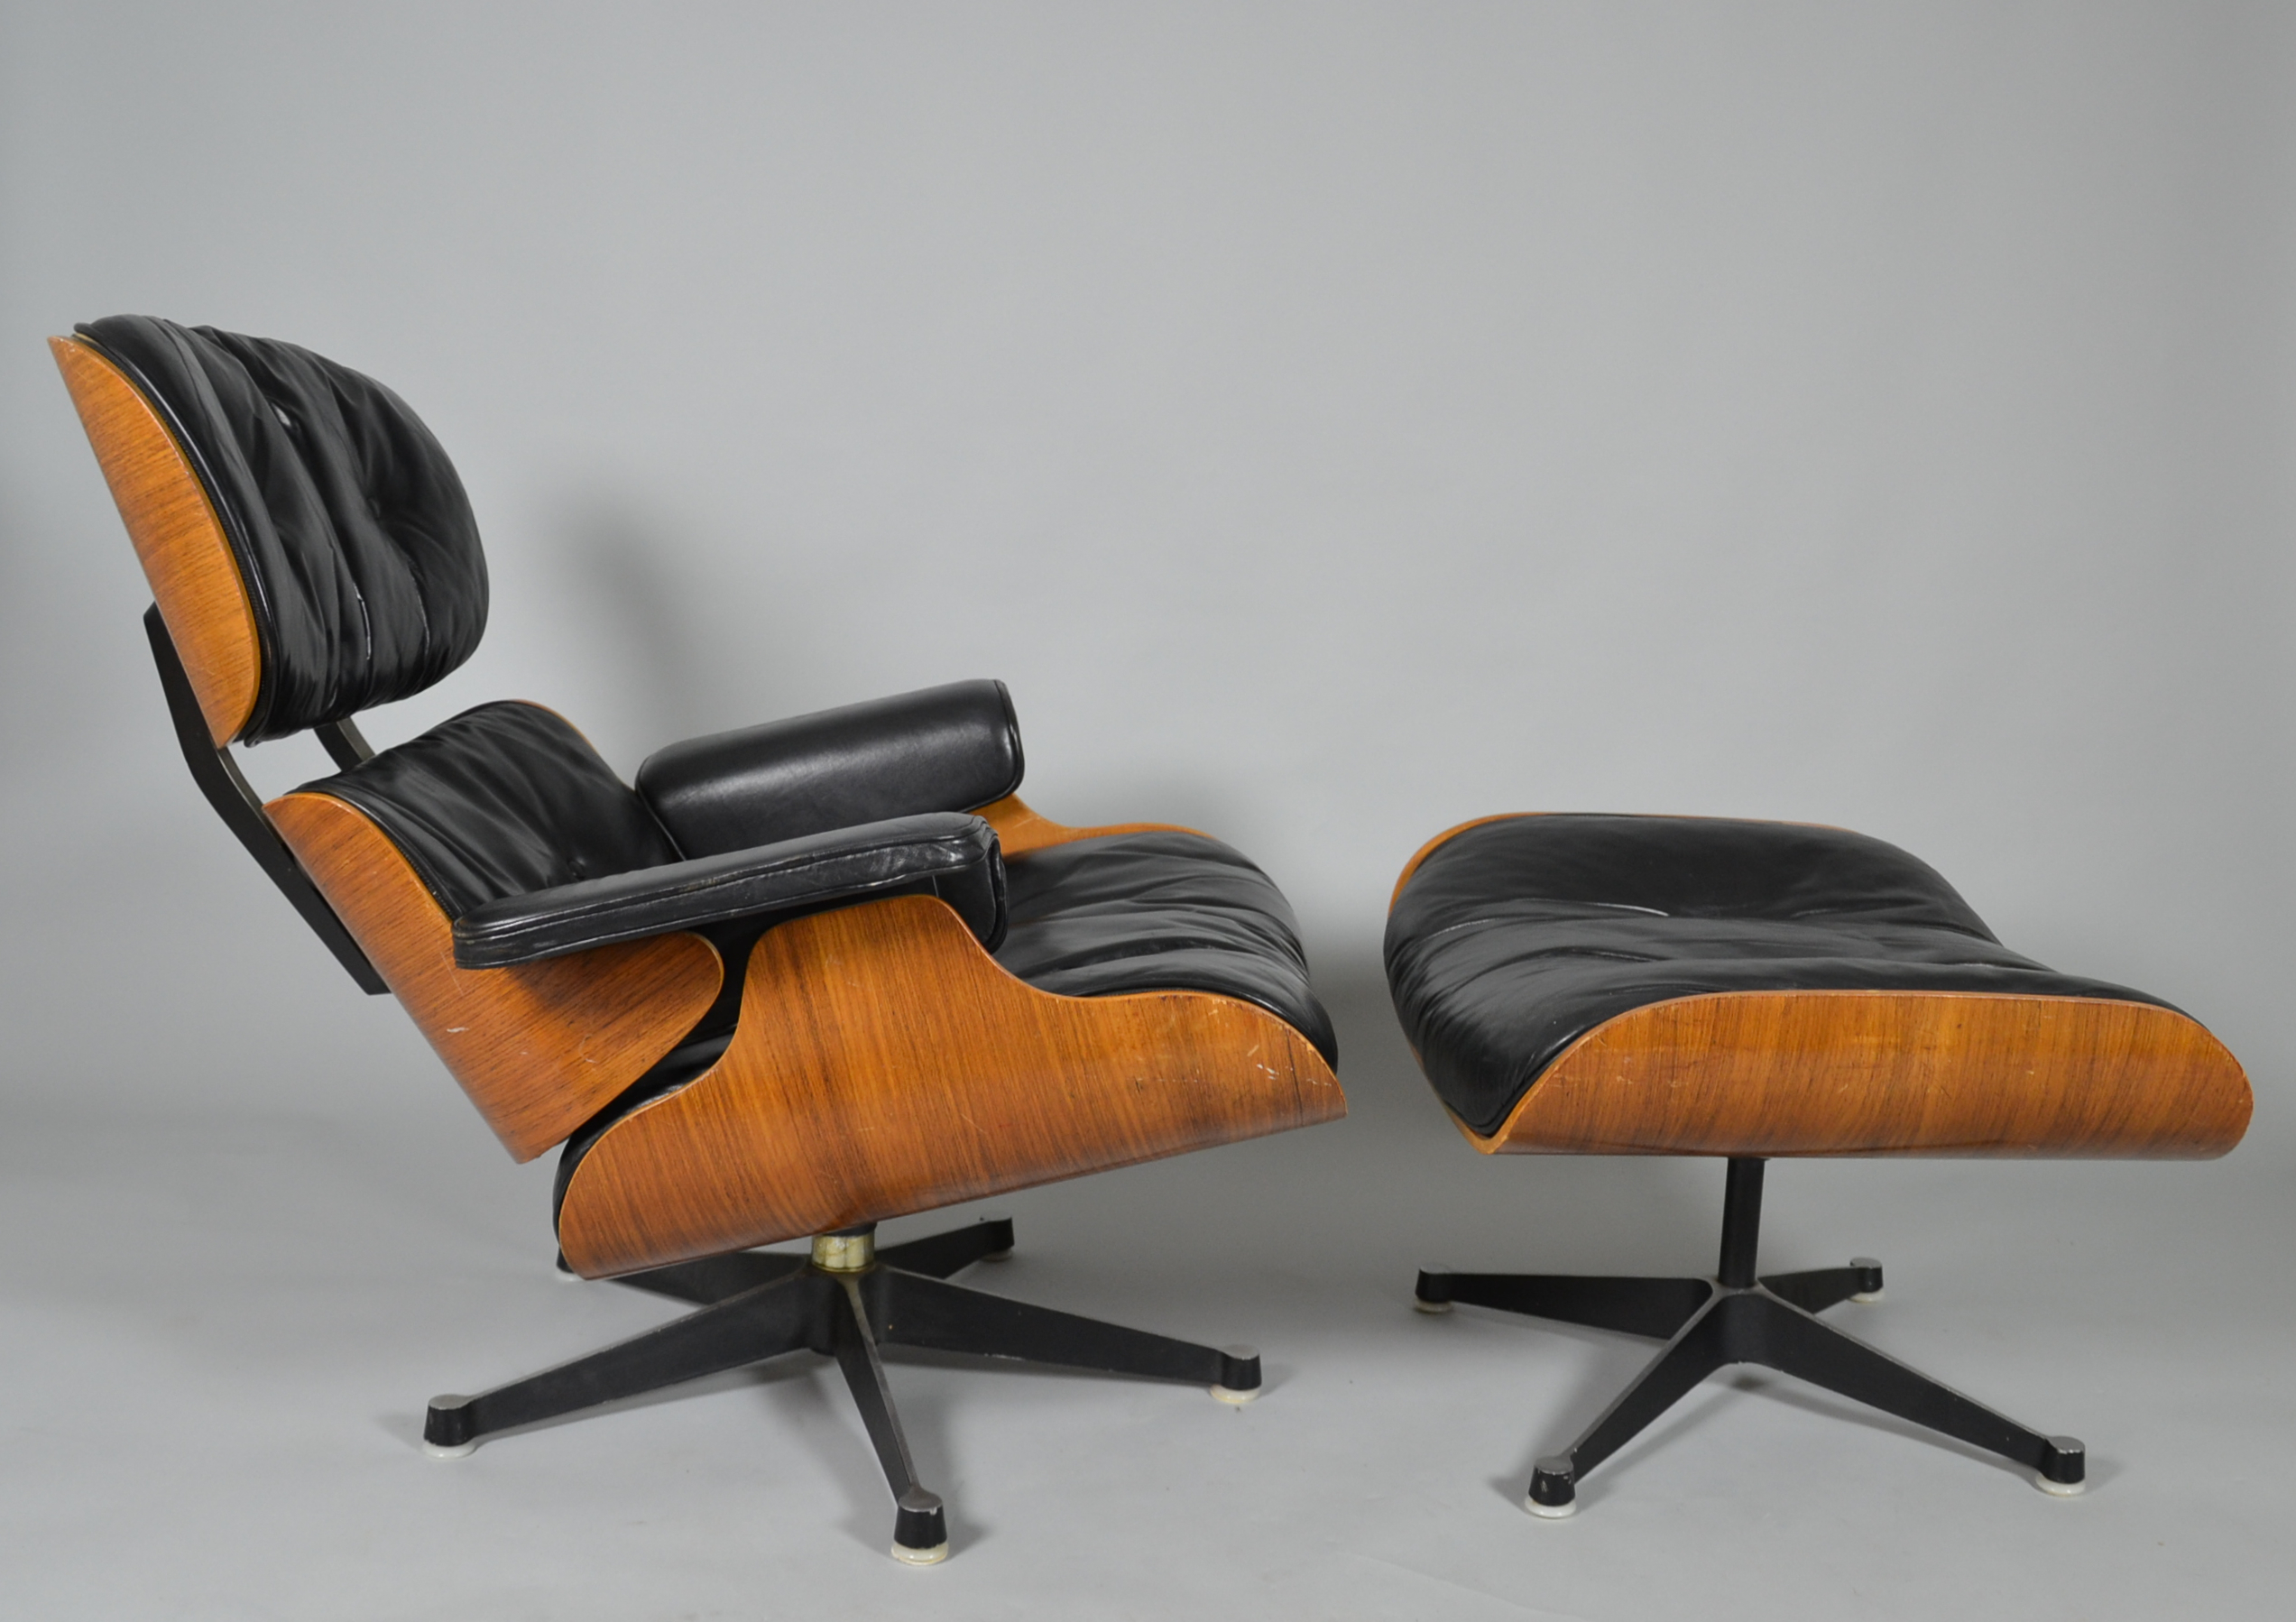 Charles Eames Lounge Chair Charles & Ray Eames. Lounge Chair With Ottoman. Furniture - Armchairs & Chairs - Auctionet